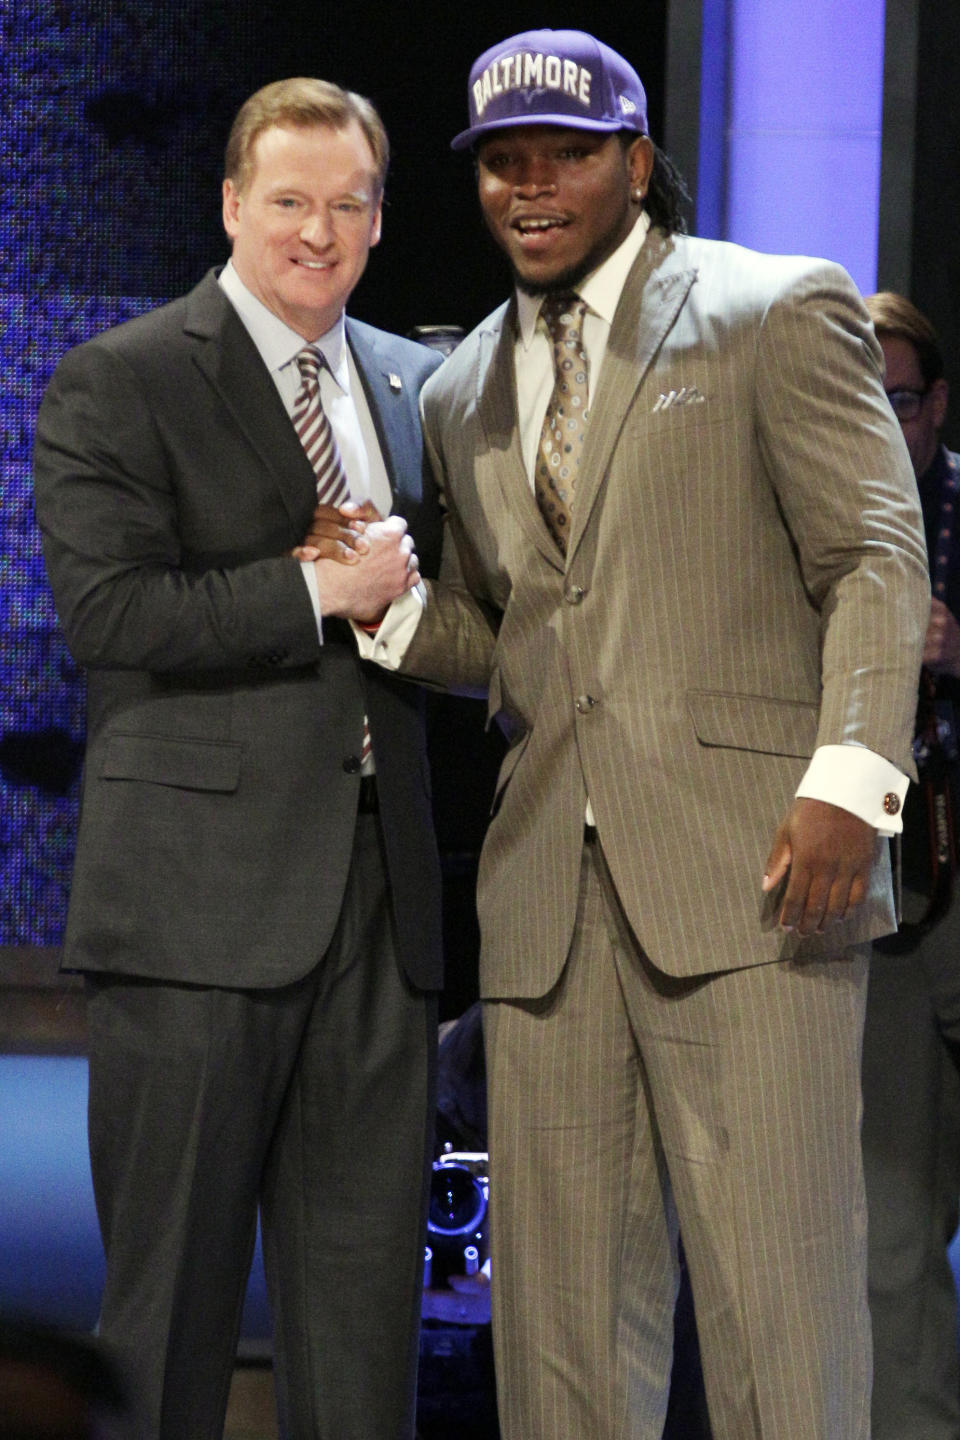 Alabama defensive end Courtney Upshaw poses for photographs with NFL Commissioner Roger Goodell after being selected 35th overall by the Baltimore Ravens in the second round of the NFL football draft at Radio City Music Hall, Friday, April 27, 2012, in New York. (AP Photo/Frank Franklin II)